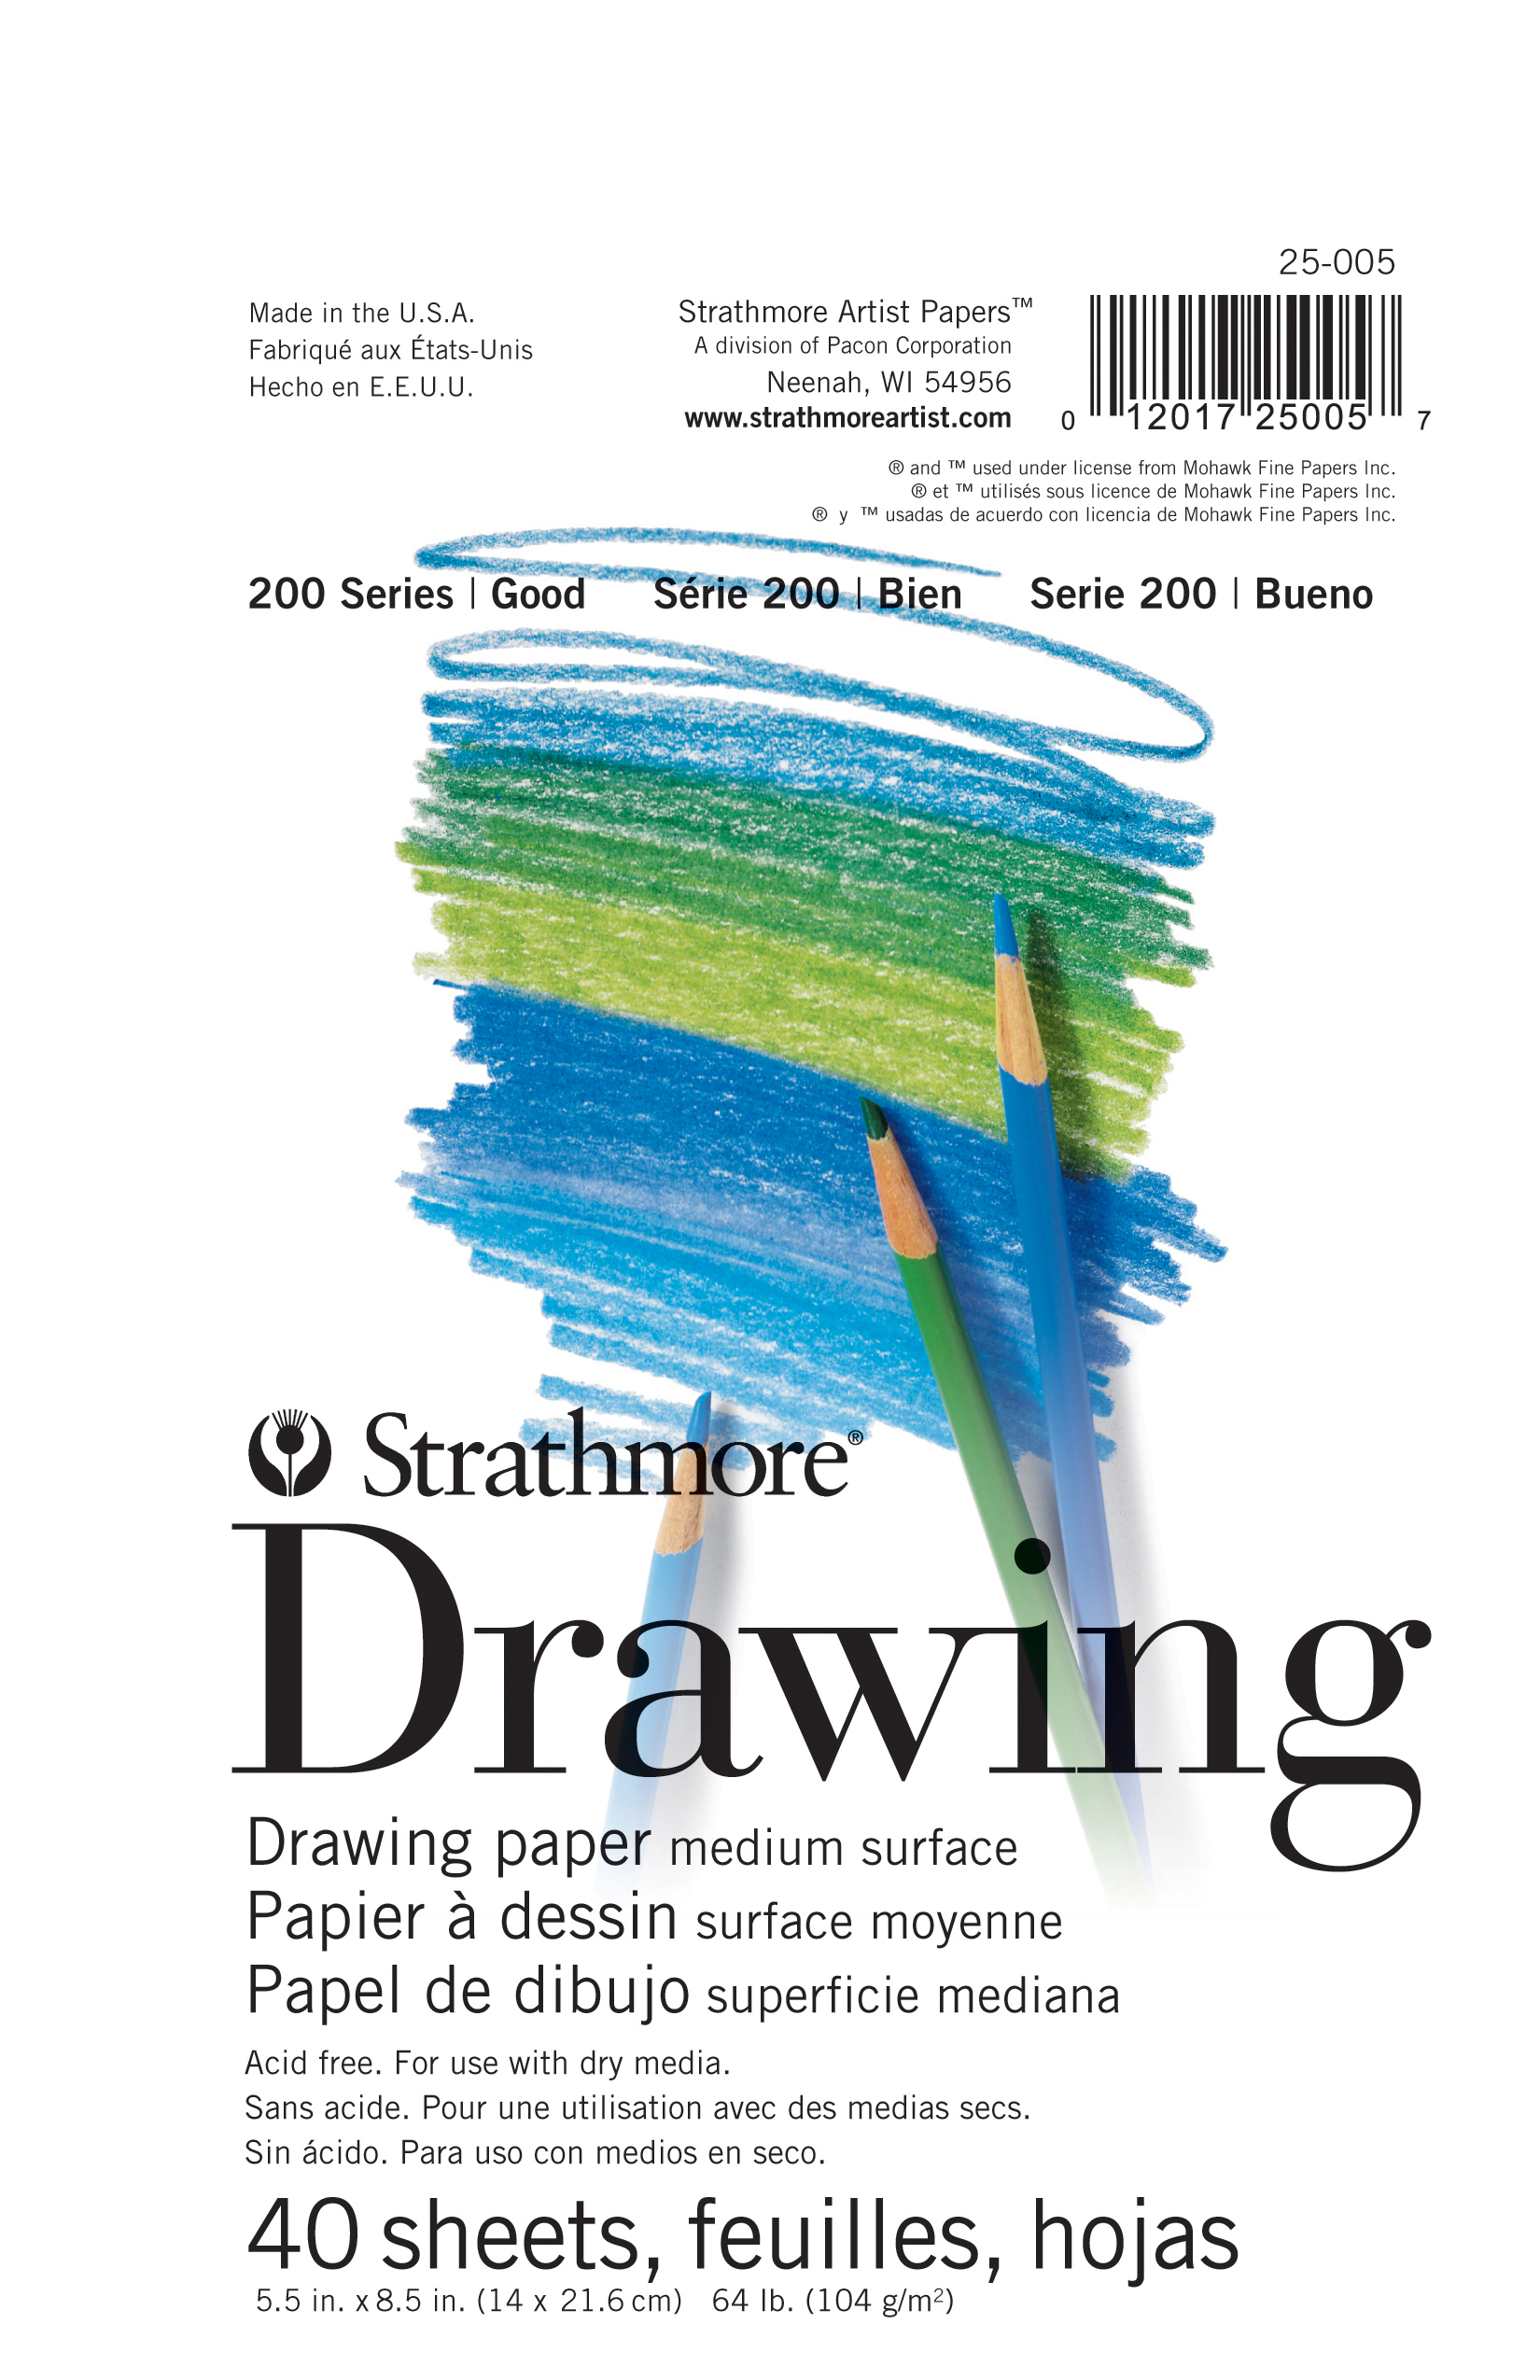 Strathmore Drawing Paper 200 Series, 5.5\u0022 x 8.5\u0022